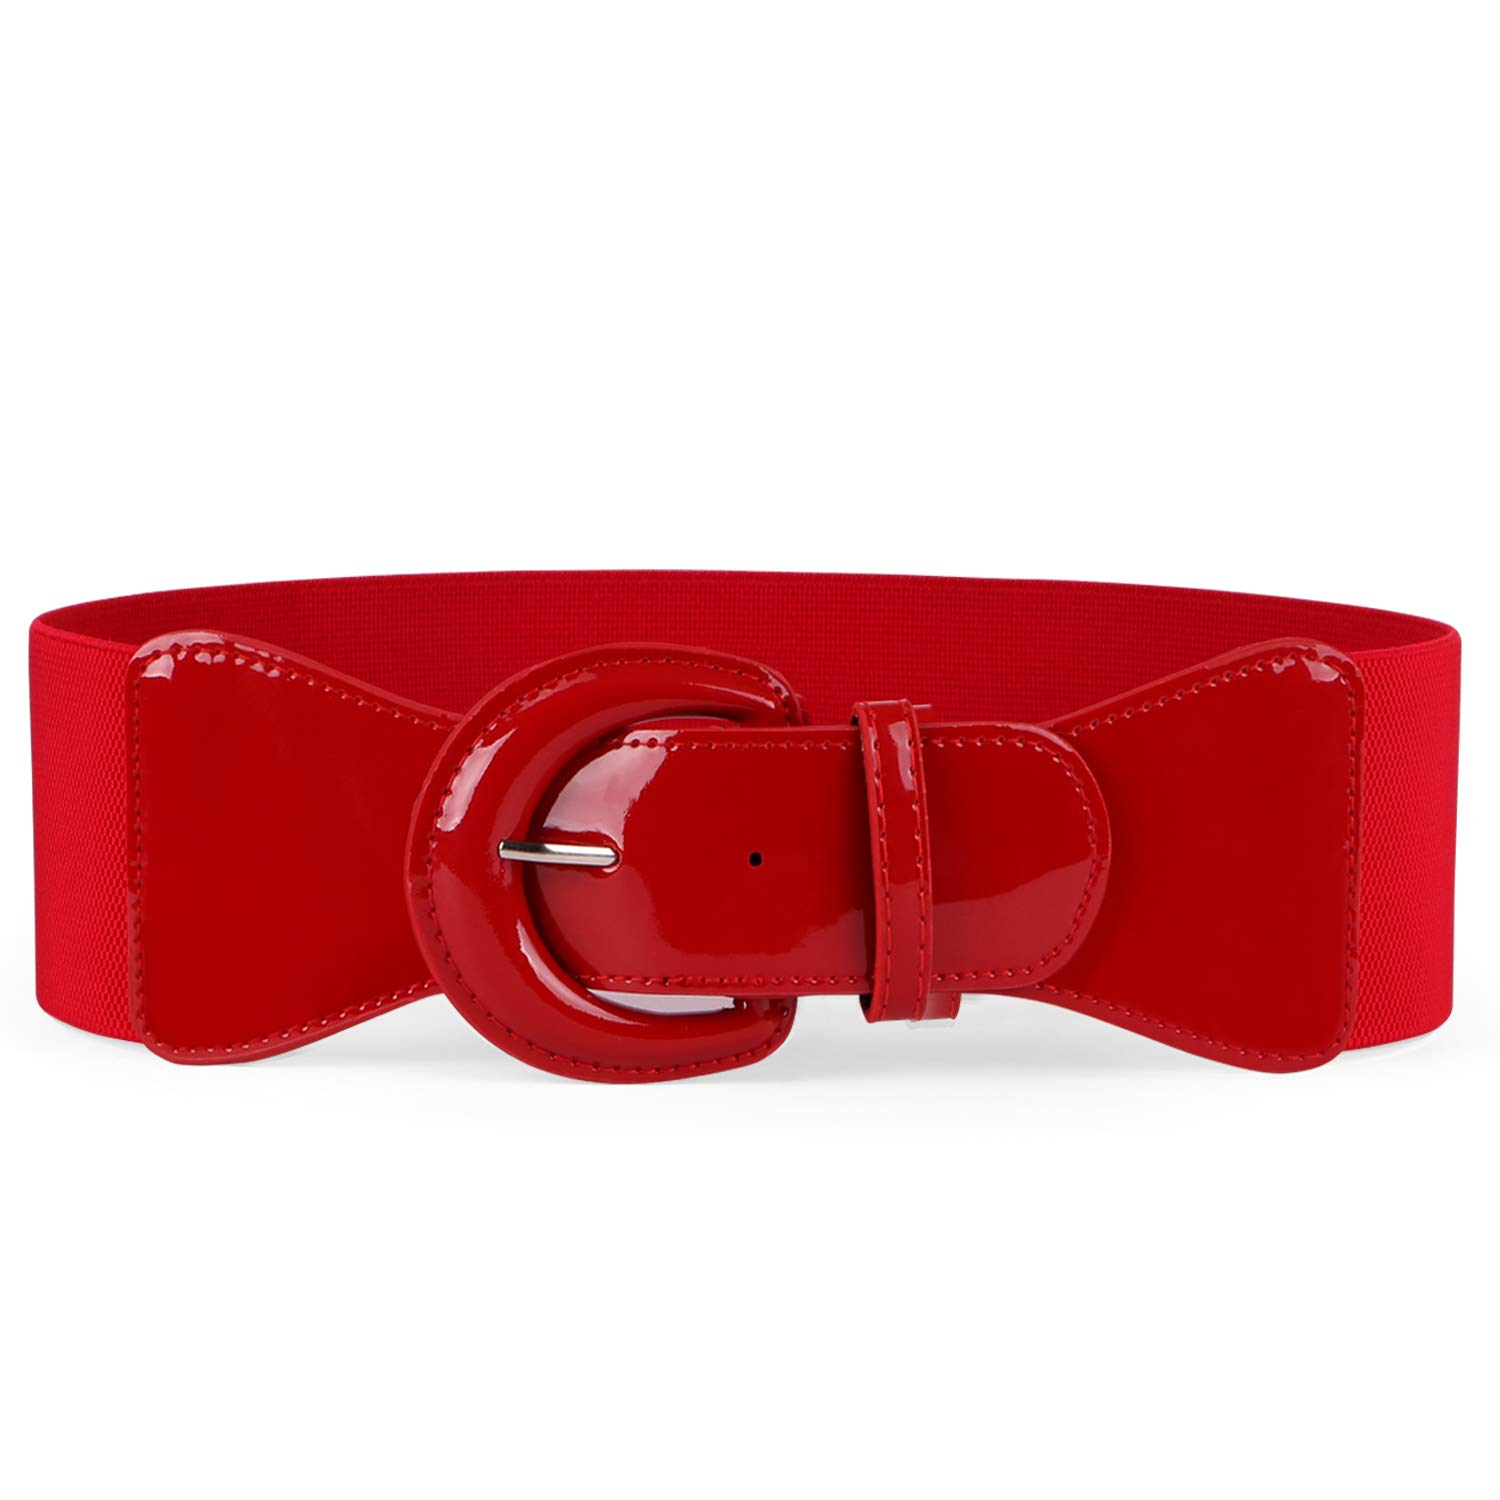 Fantastic price and quality, nice thick belt